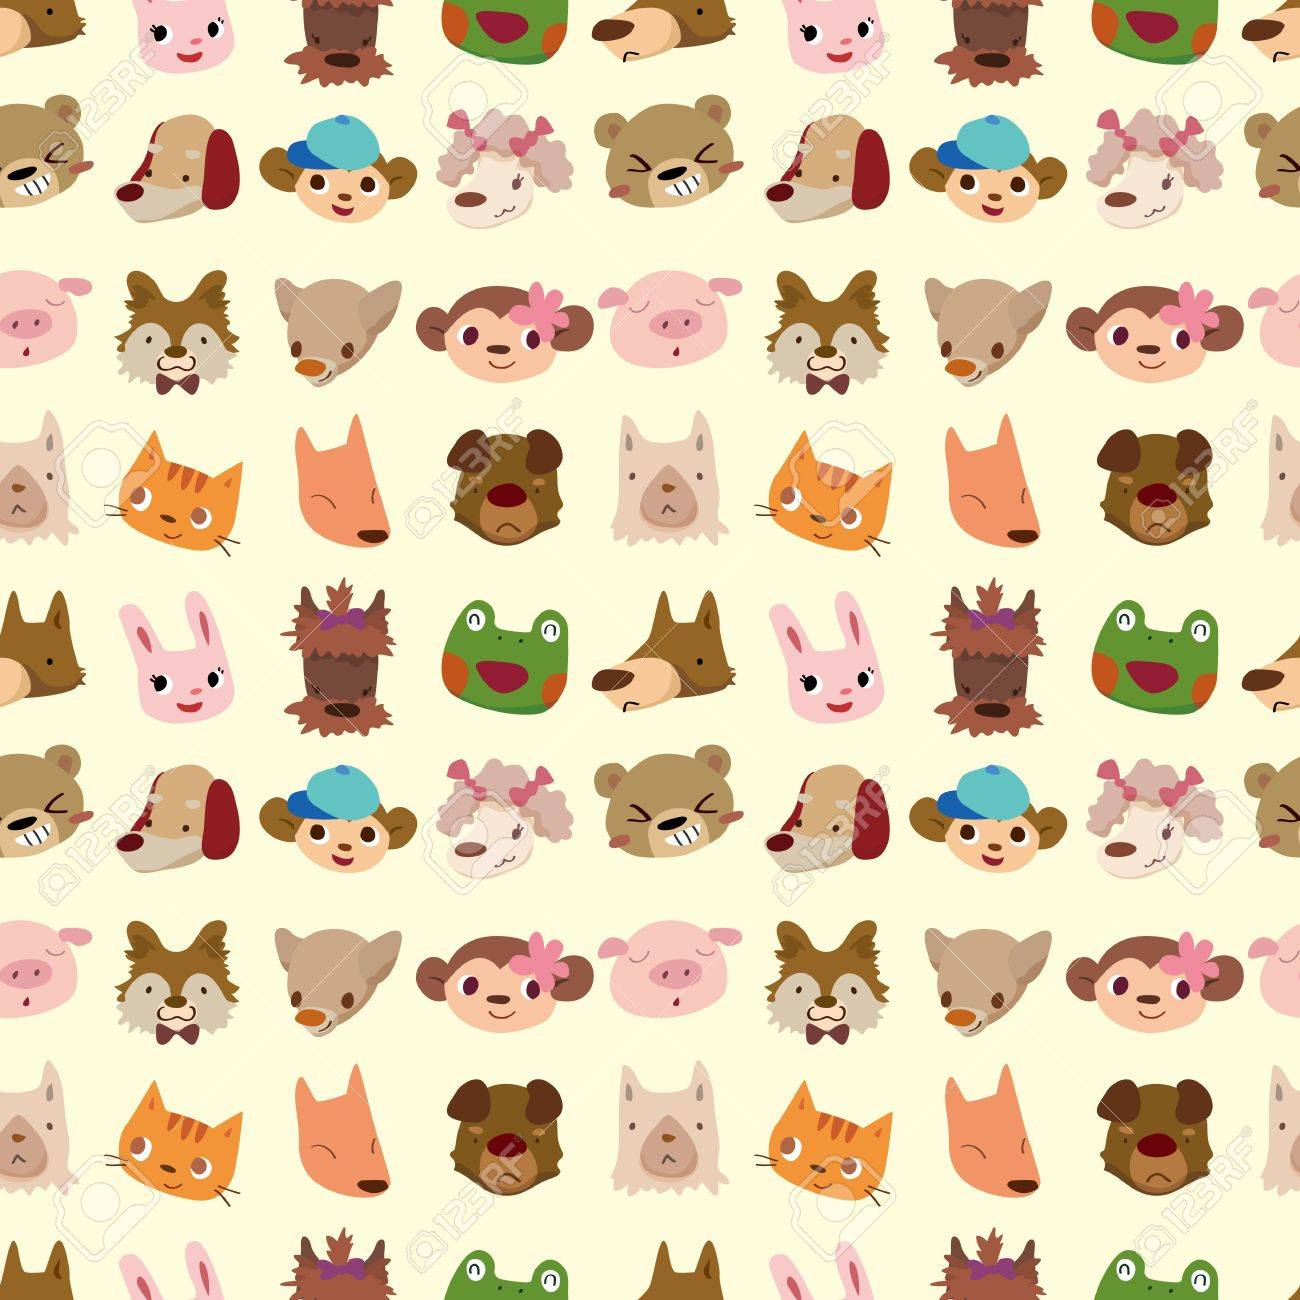 cartoon animal face seamless pattern Stock Vector - 11158412